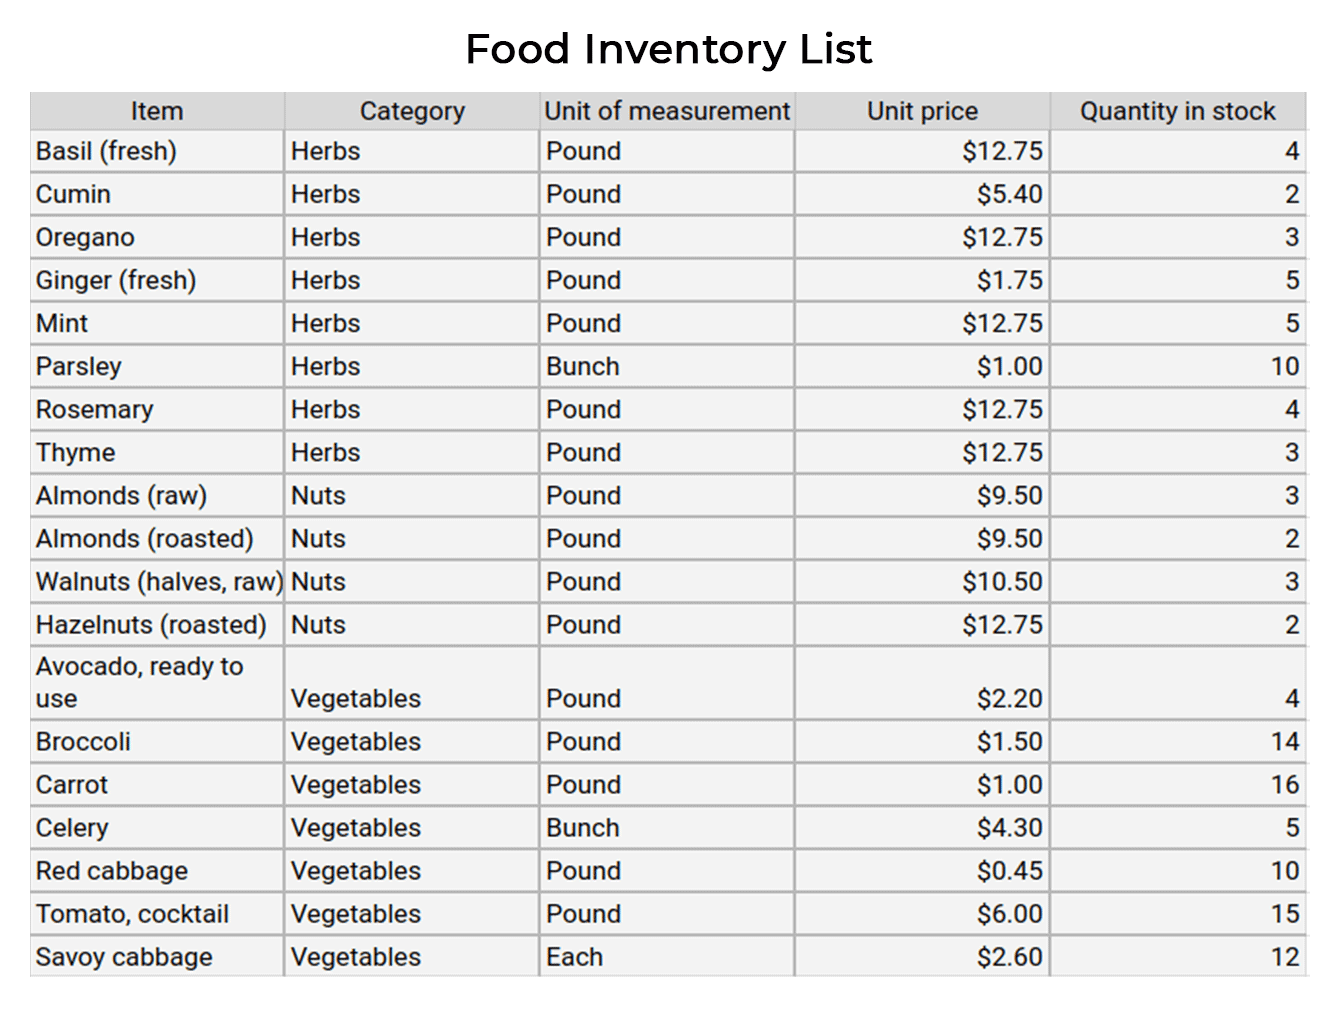 Developing An Inventory Management System For Your Restaurant By Steelkiwi Inc Medium